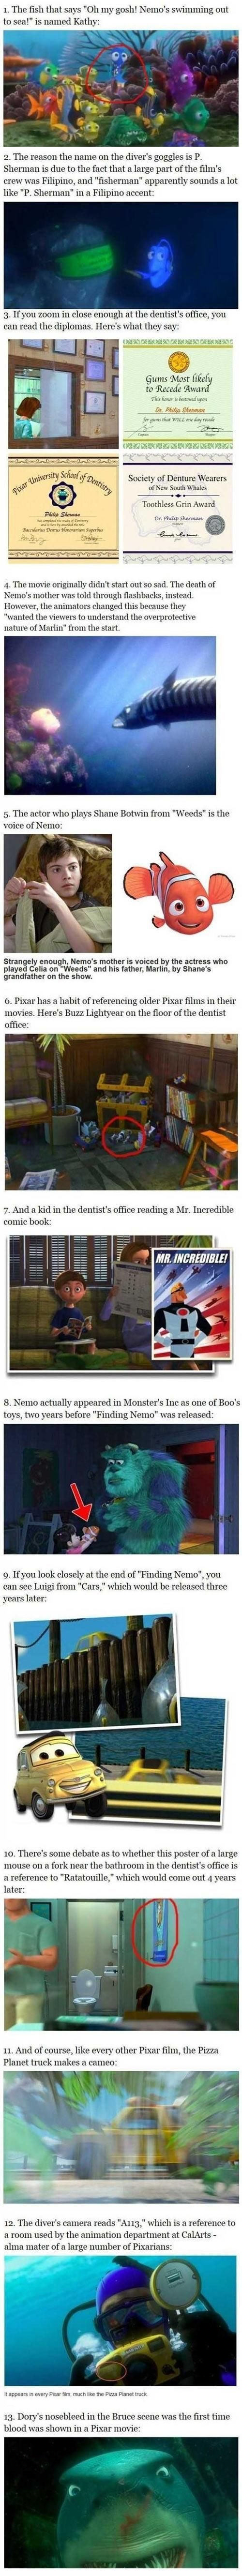 Finding Nemo Facts. Also in the scene where Nigel flies in the dentists office Boo's mobile can be seen.